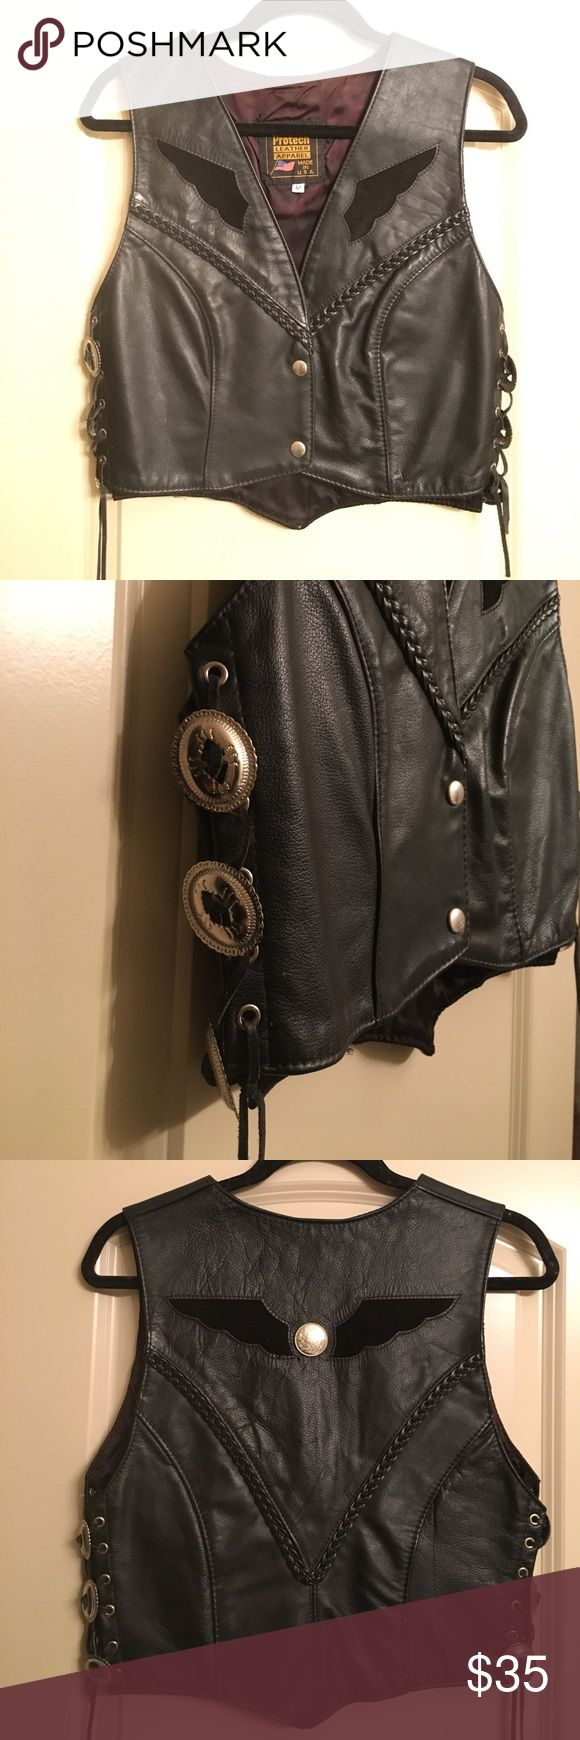 Southwestern Leather Vest Sexy black leather vest with concho detail laced up on sides. Excellent Condition. So sad it's too big for me! I'm a size 0 and it's not huge on me - could honestly fit M-L. Not Harley Davidson - labeled to attract views! # rock and roll # biker Harley-Davidson Jackets & Coats Vests